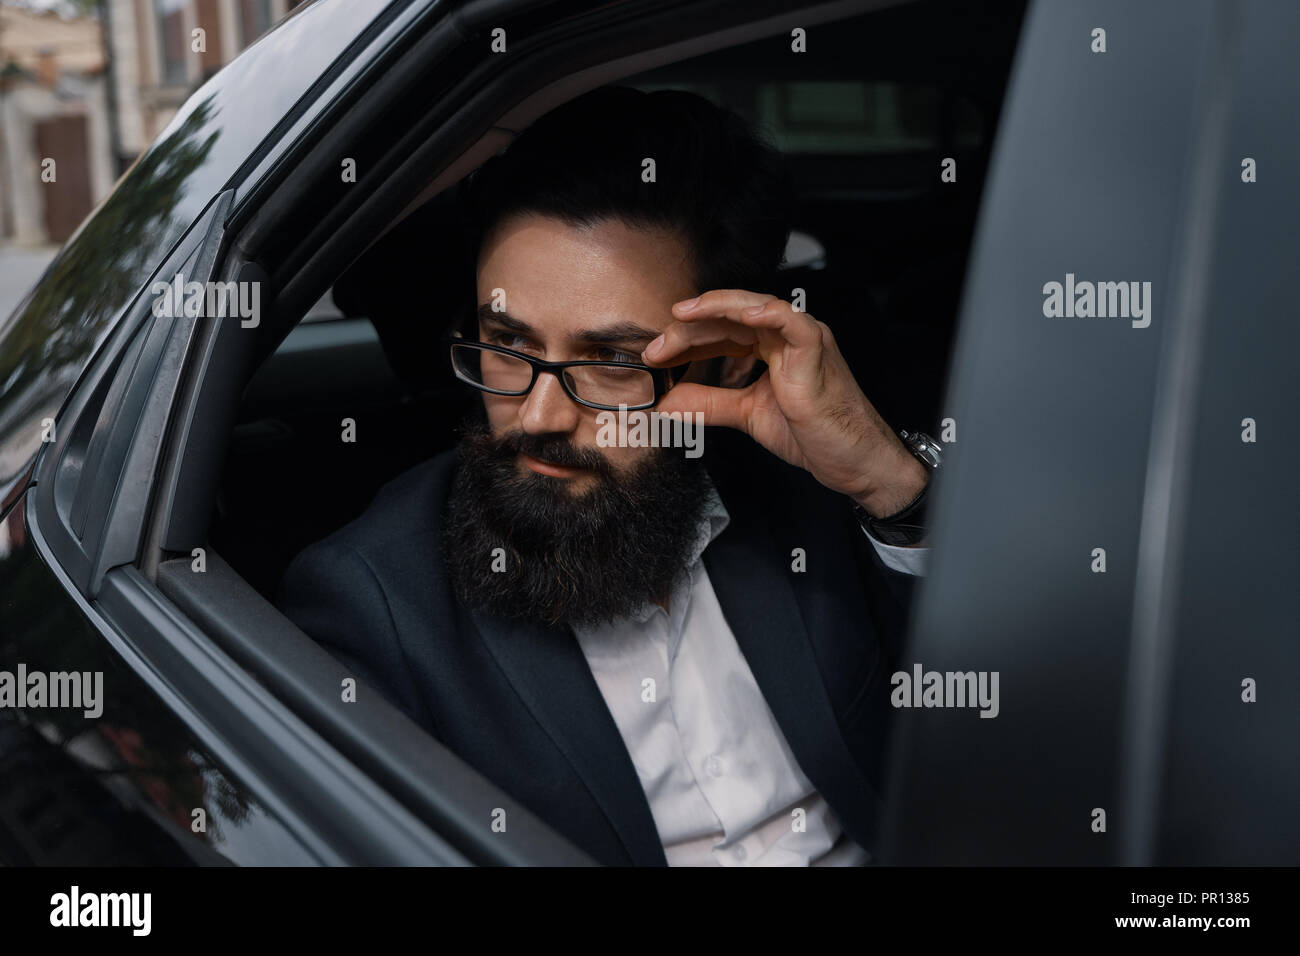 Attractive young businessman in a car looking determined. - Stock Image